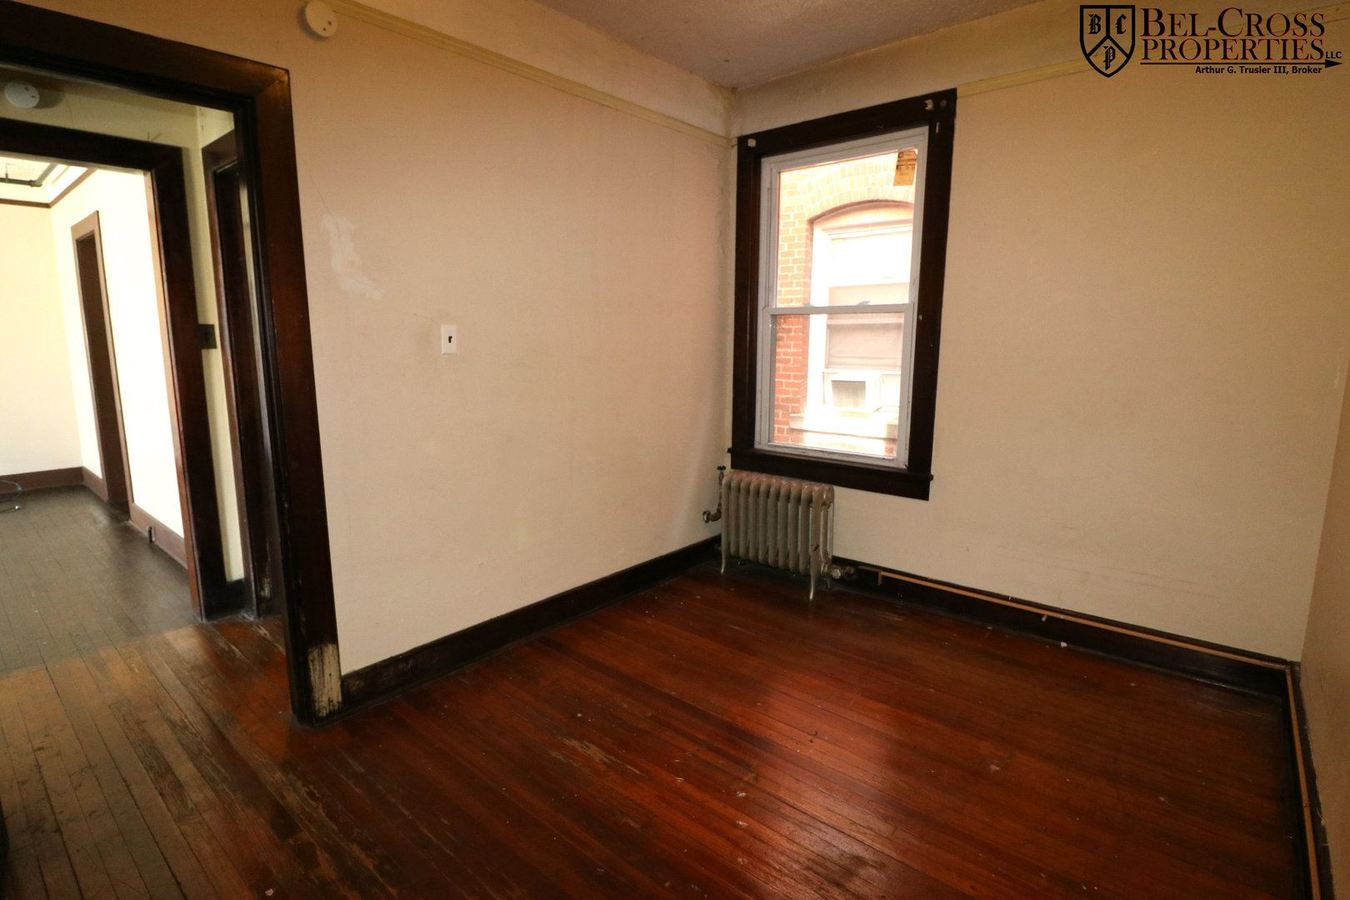 2 Bedrooms 1 Bathroom Apartment for rent at 311 Spruce, 241/243/245 Walnut in Morgantown, WV